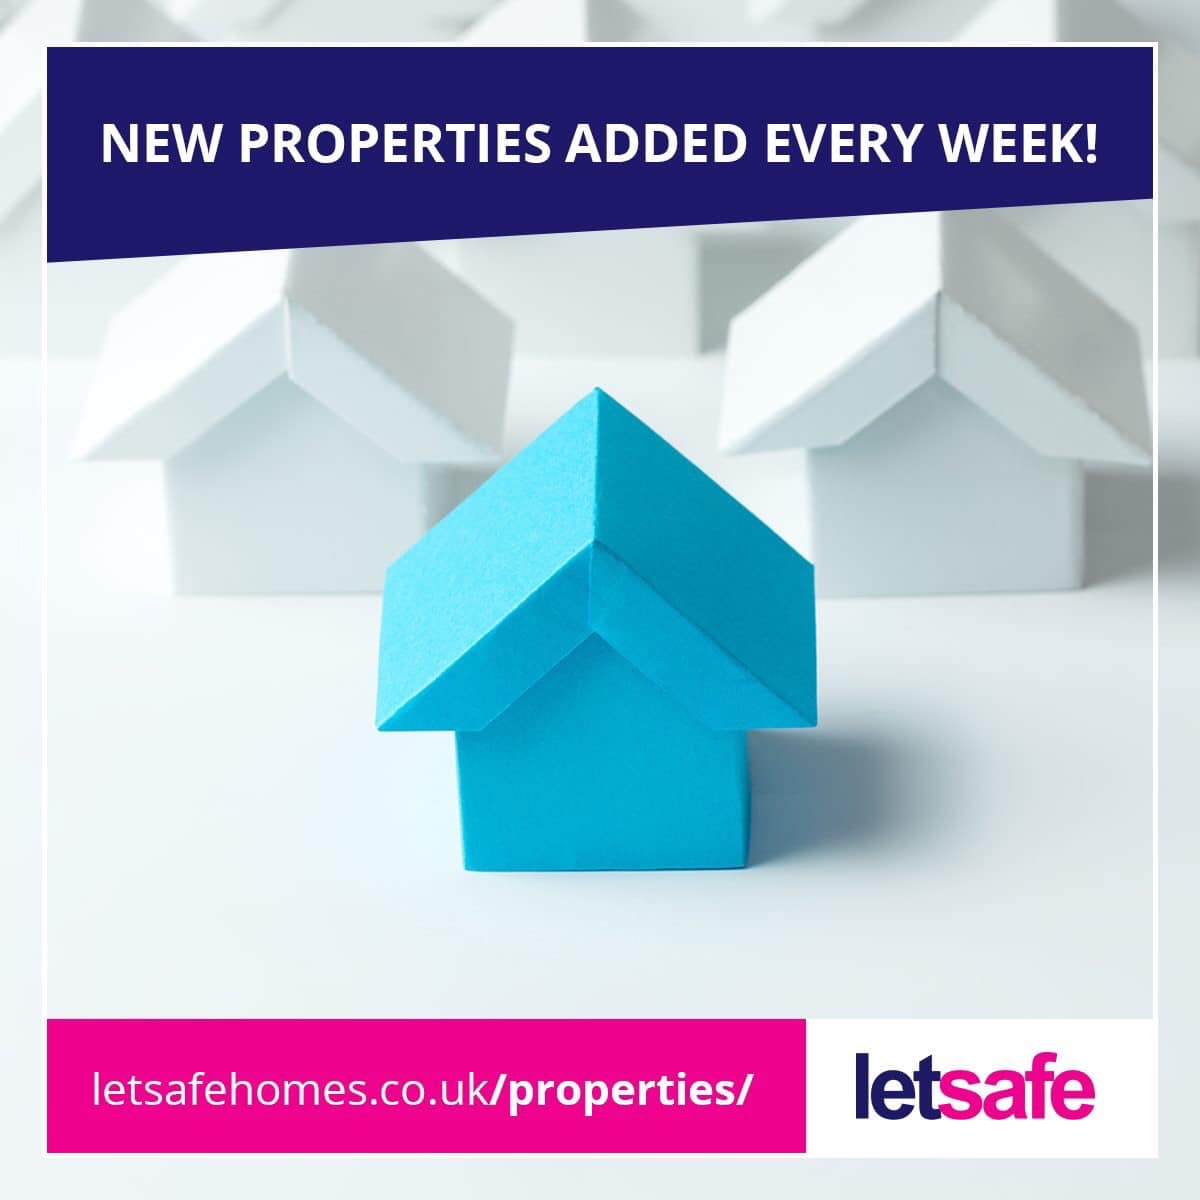 New properties added every week